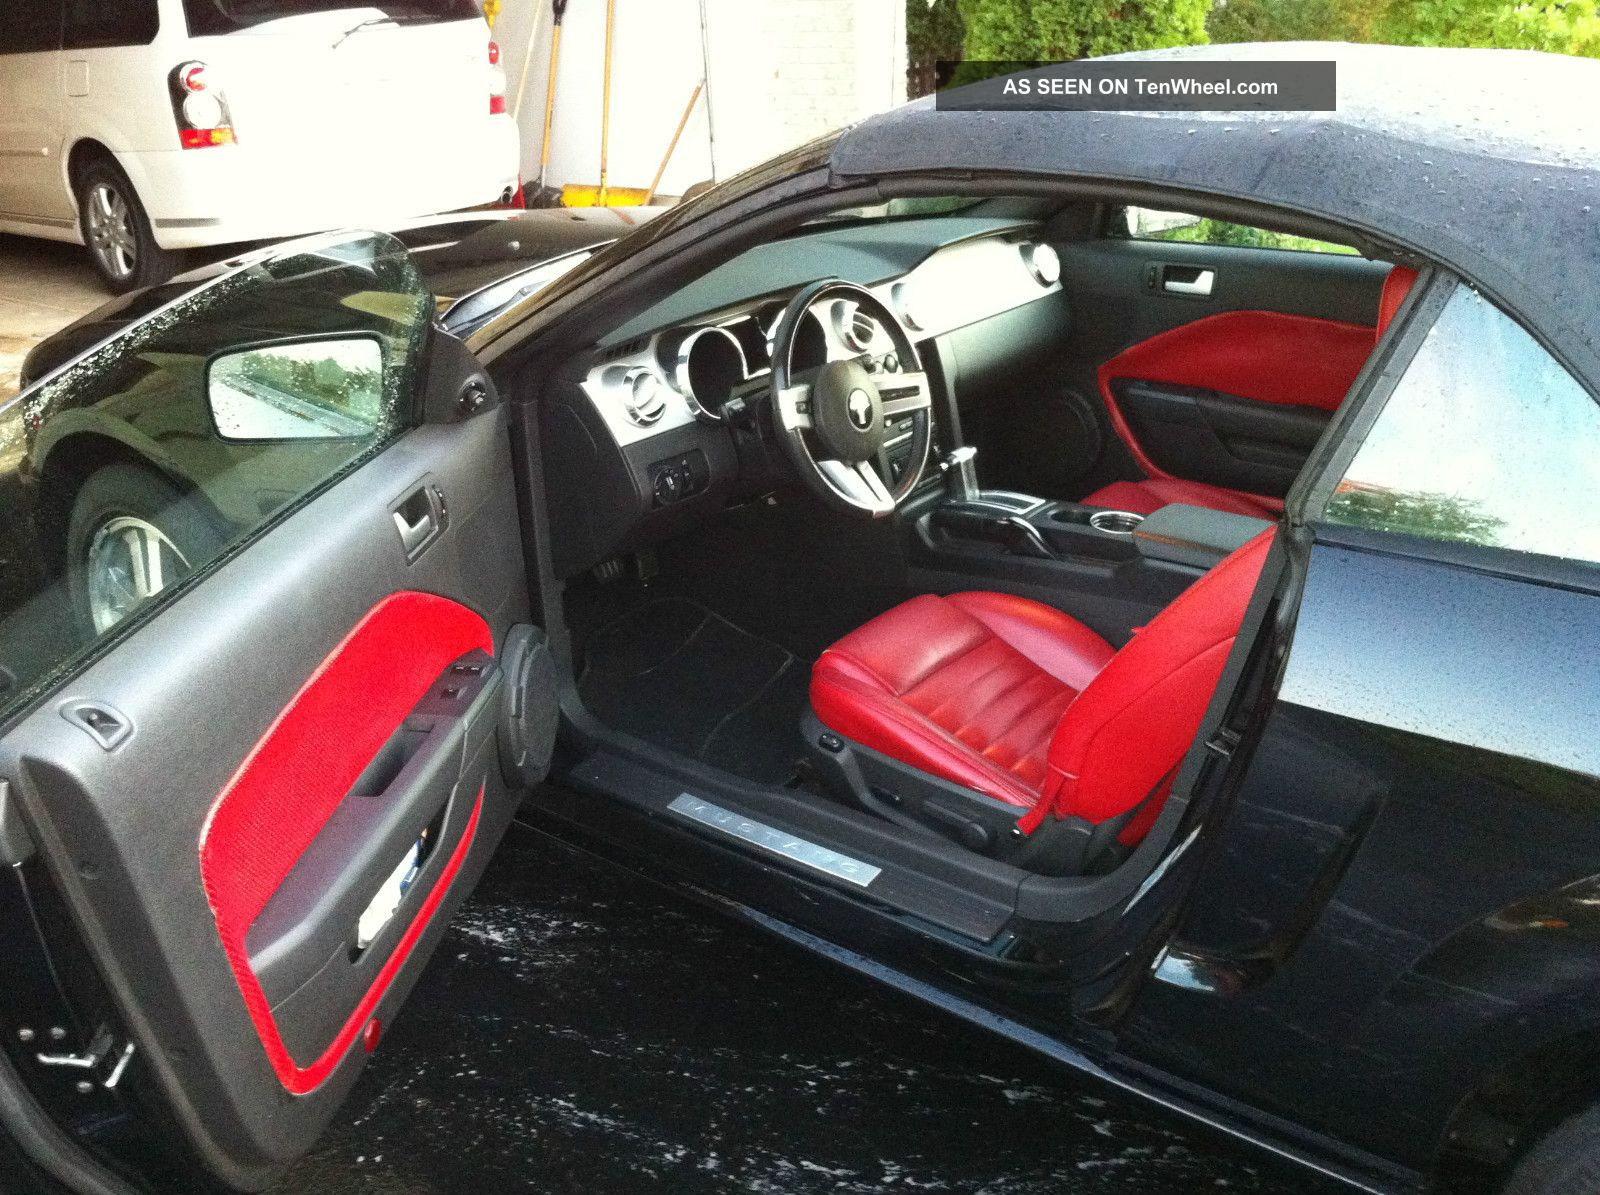 Fast Awd Cars >> 2005 Ford Mustang Gt, Convertible, 98k Mi Red Interior, Fast Car